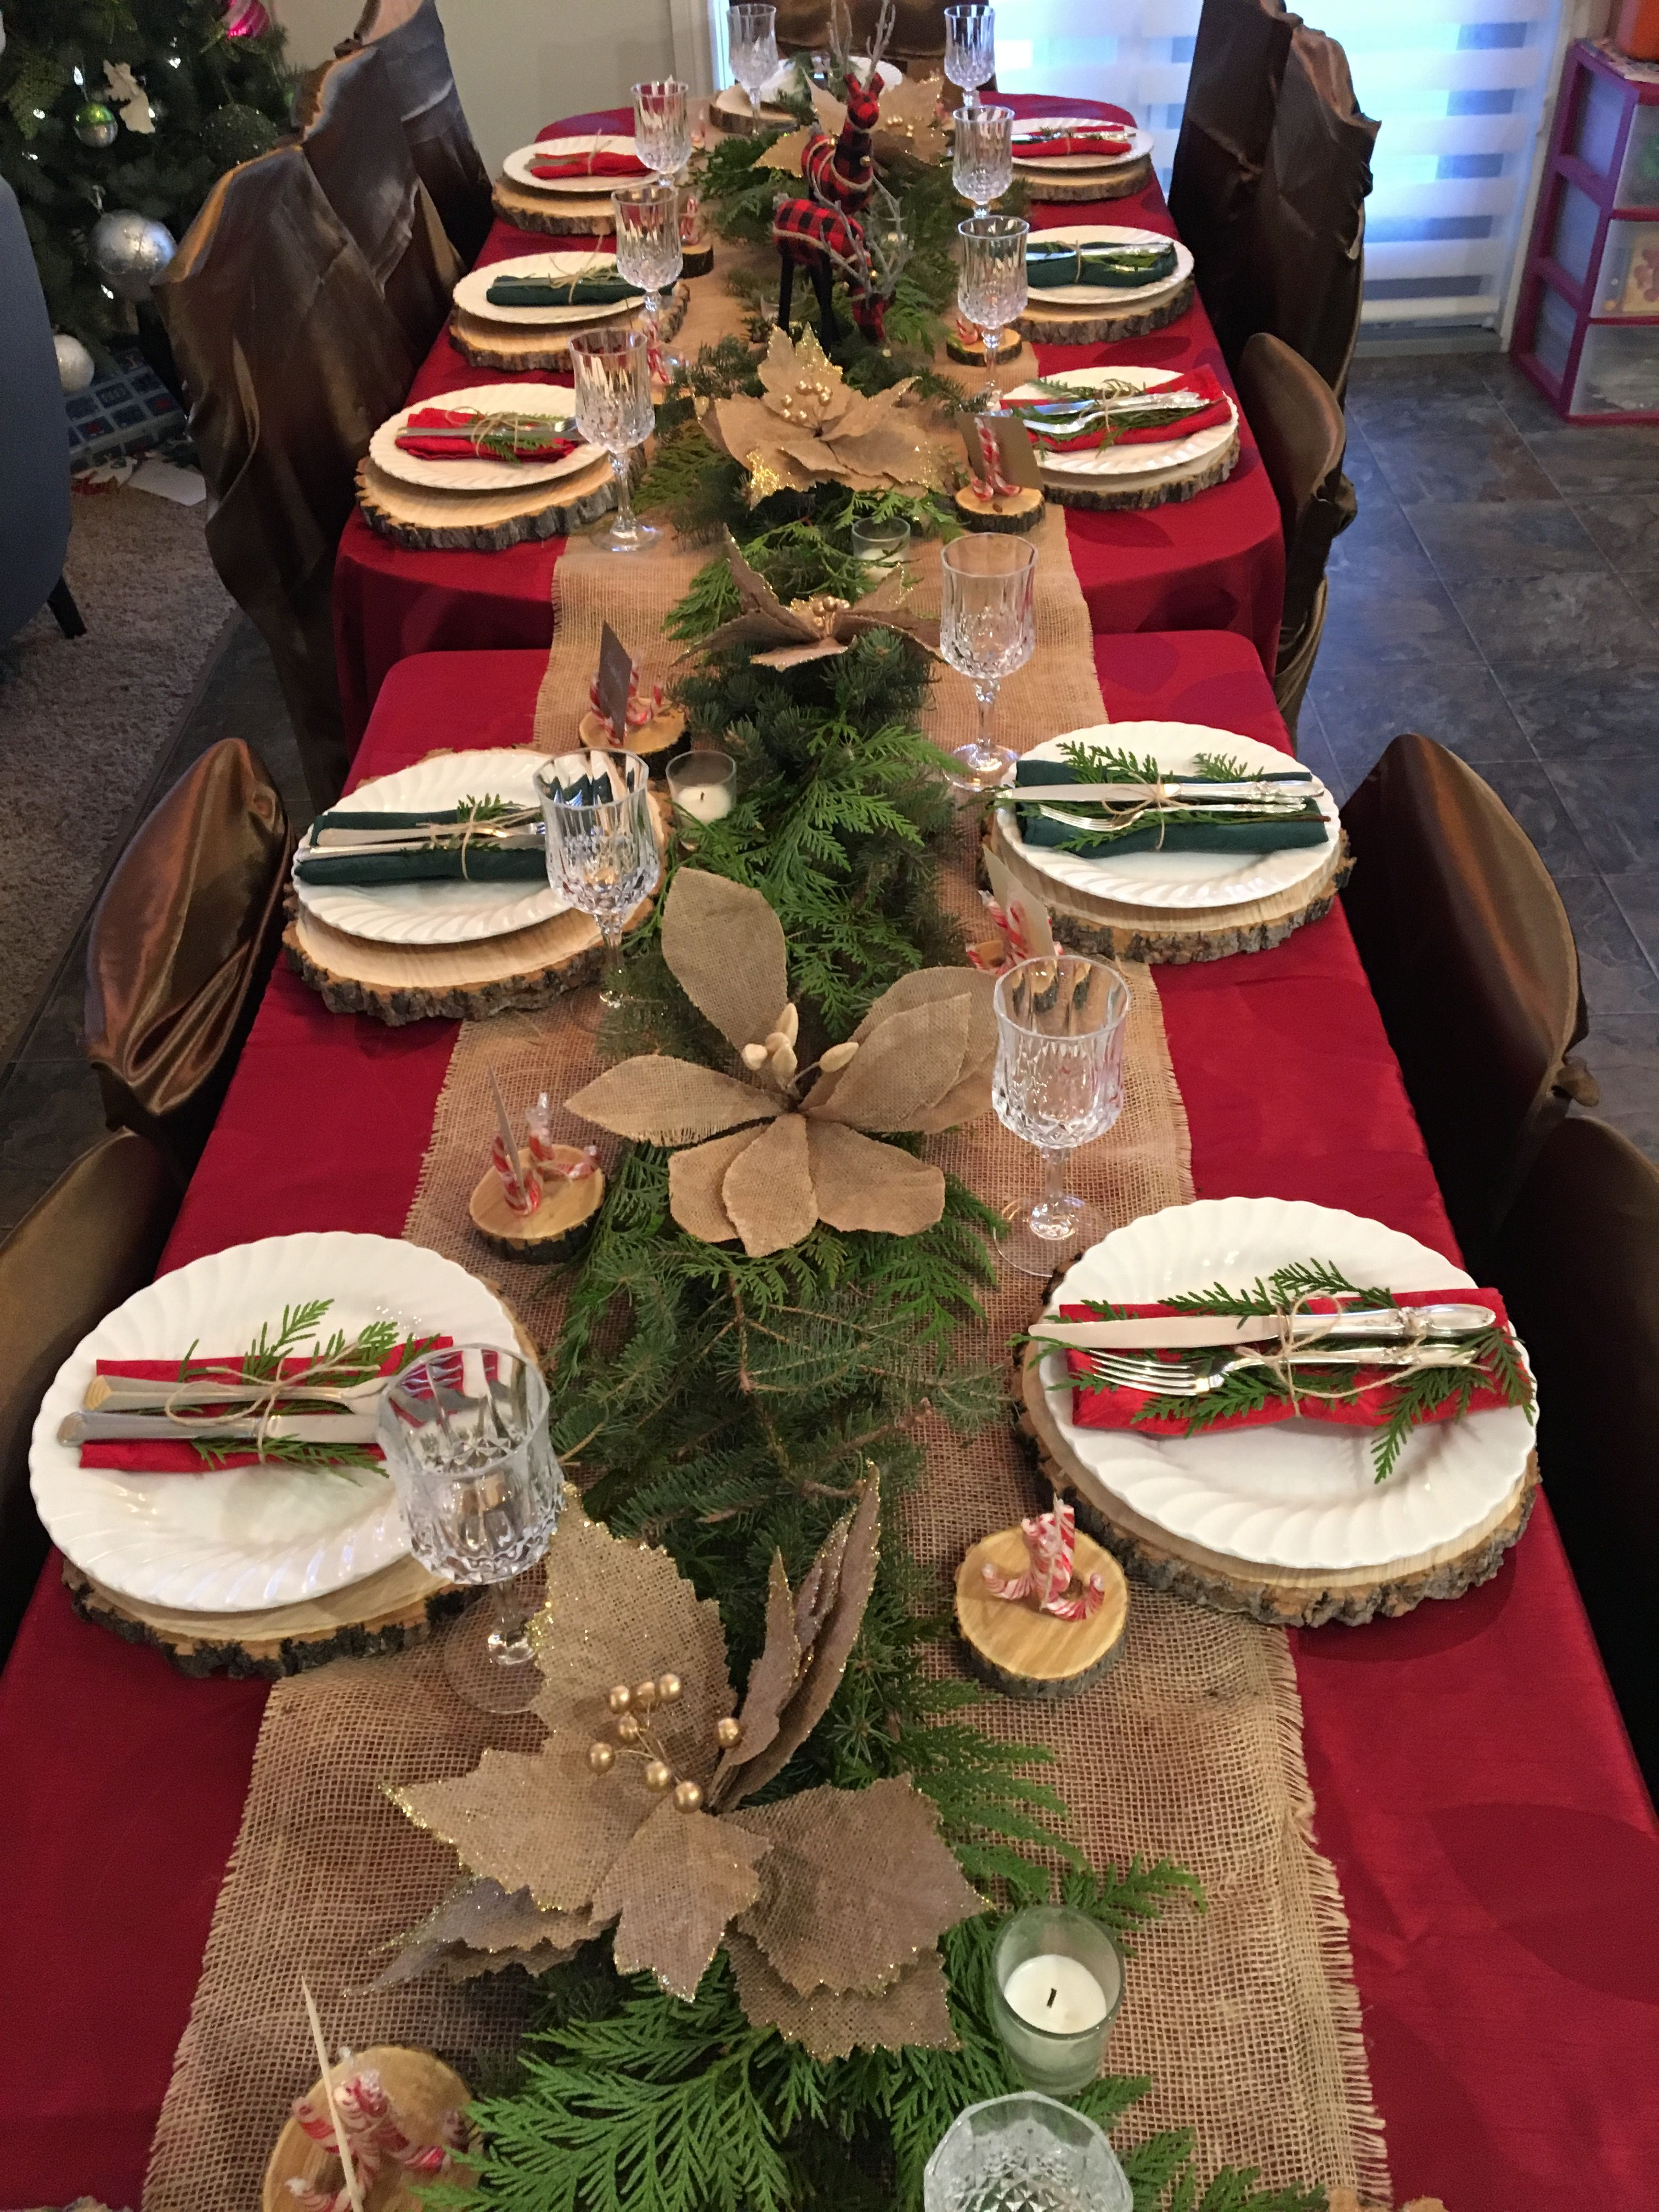 My Favourite Christmas Table Easy Rustic Affordable And Elegant Christmas Dining Table Christmas Table Centerpieces Xmas Table Decorations